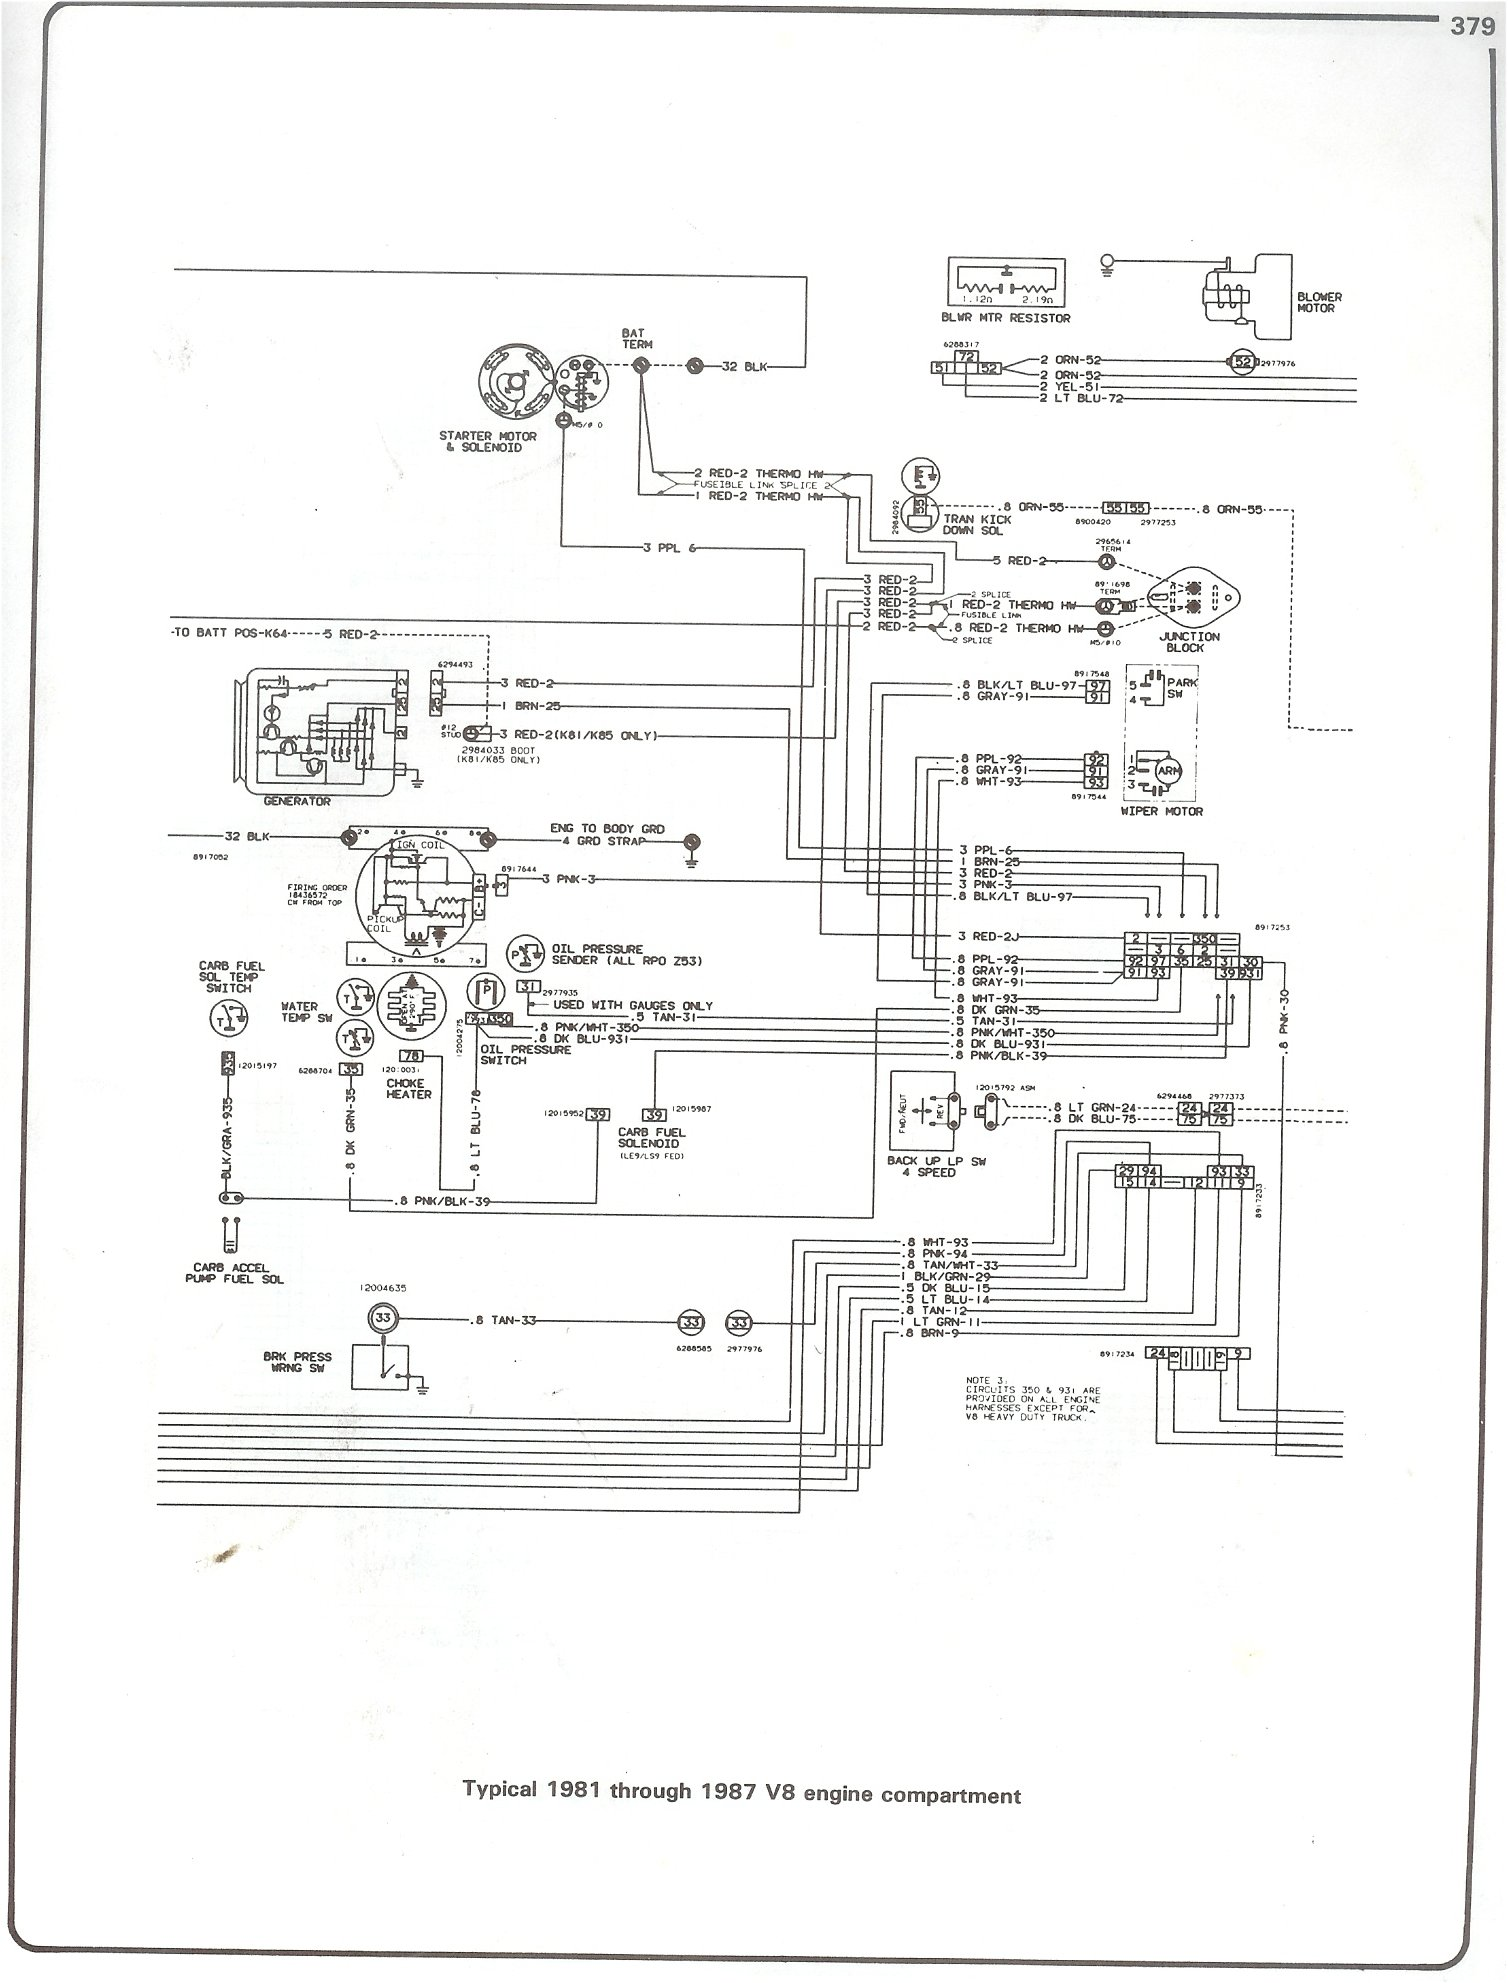 81 87_V8_engine 1976 chevy truck wiring diagram 1976 gmc wiring diagram \u2022 wiring GM Factory Wiring Diagram at honlapkeszites.co